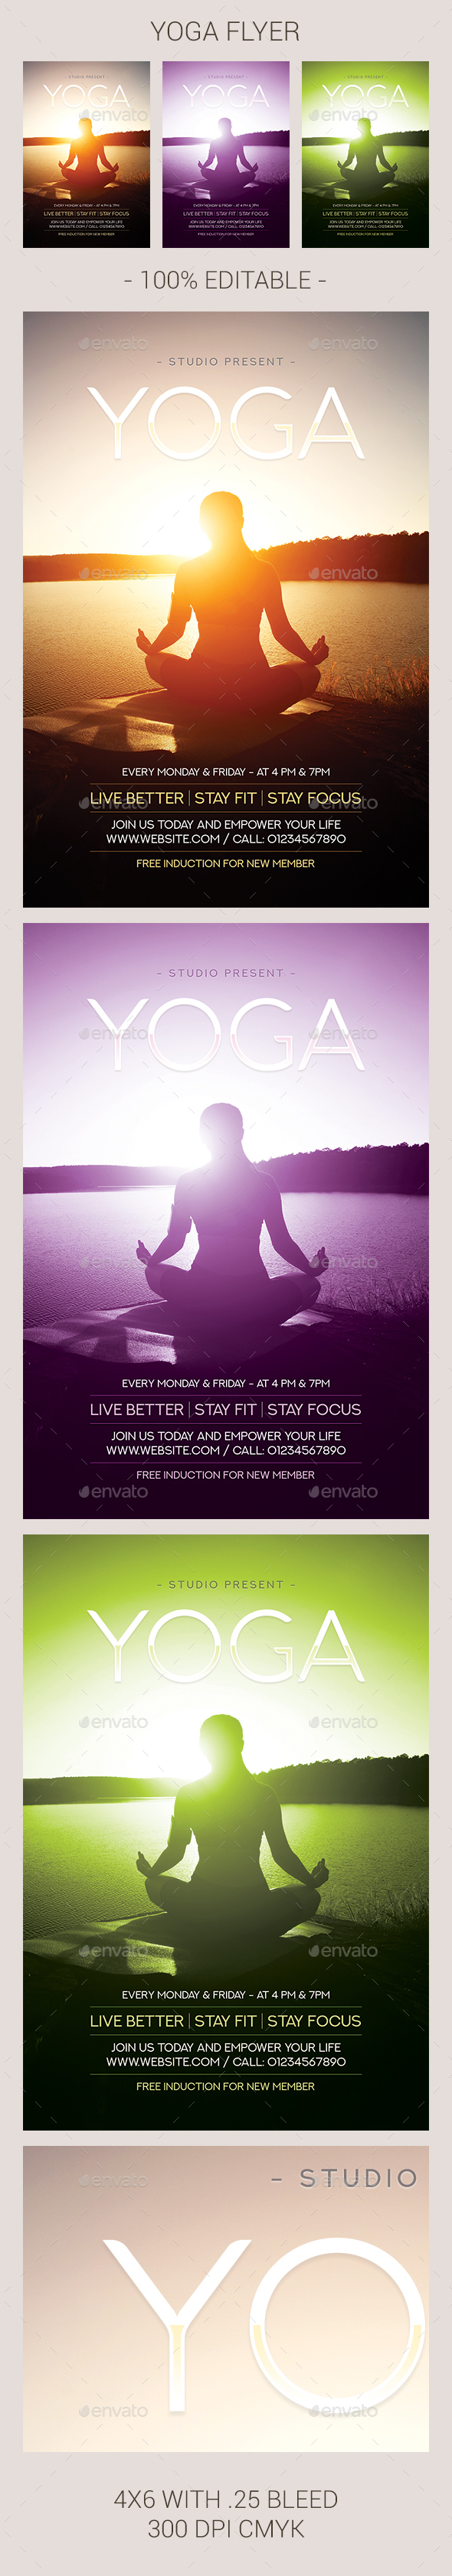 Yoga Flyer - Flyers Print Templates